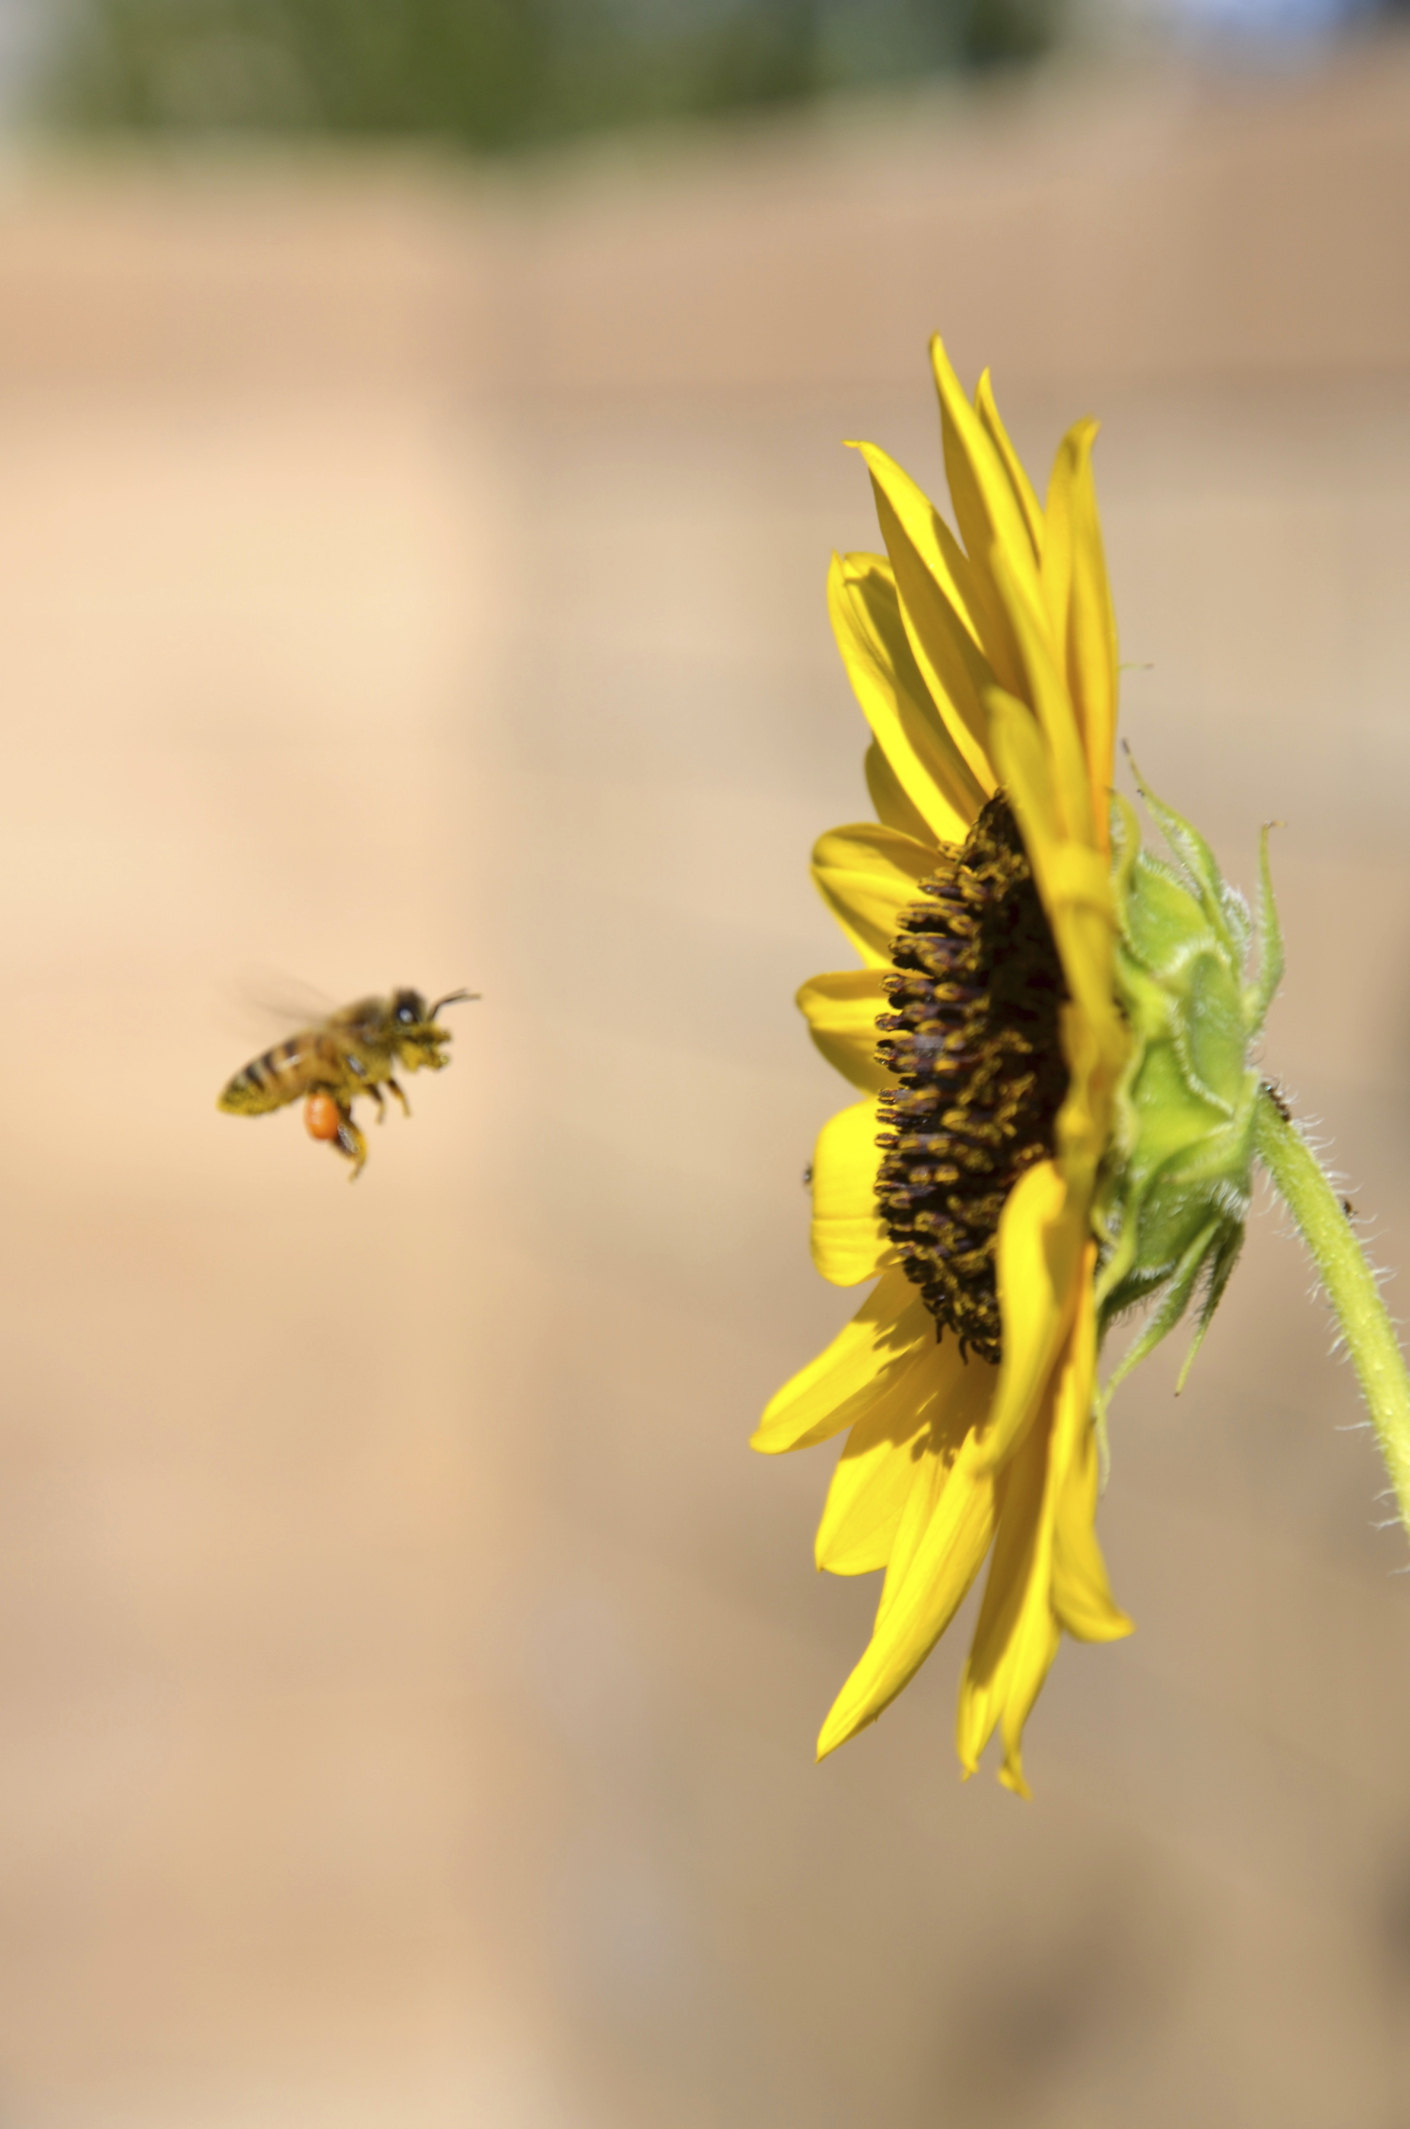 How to Get Rid of Mining Bees |